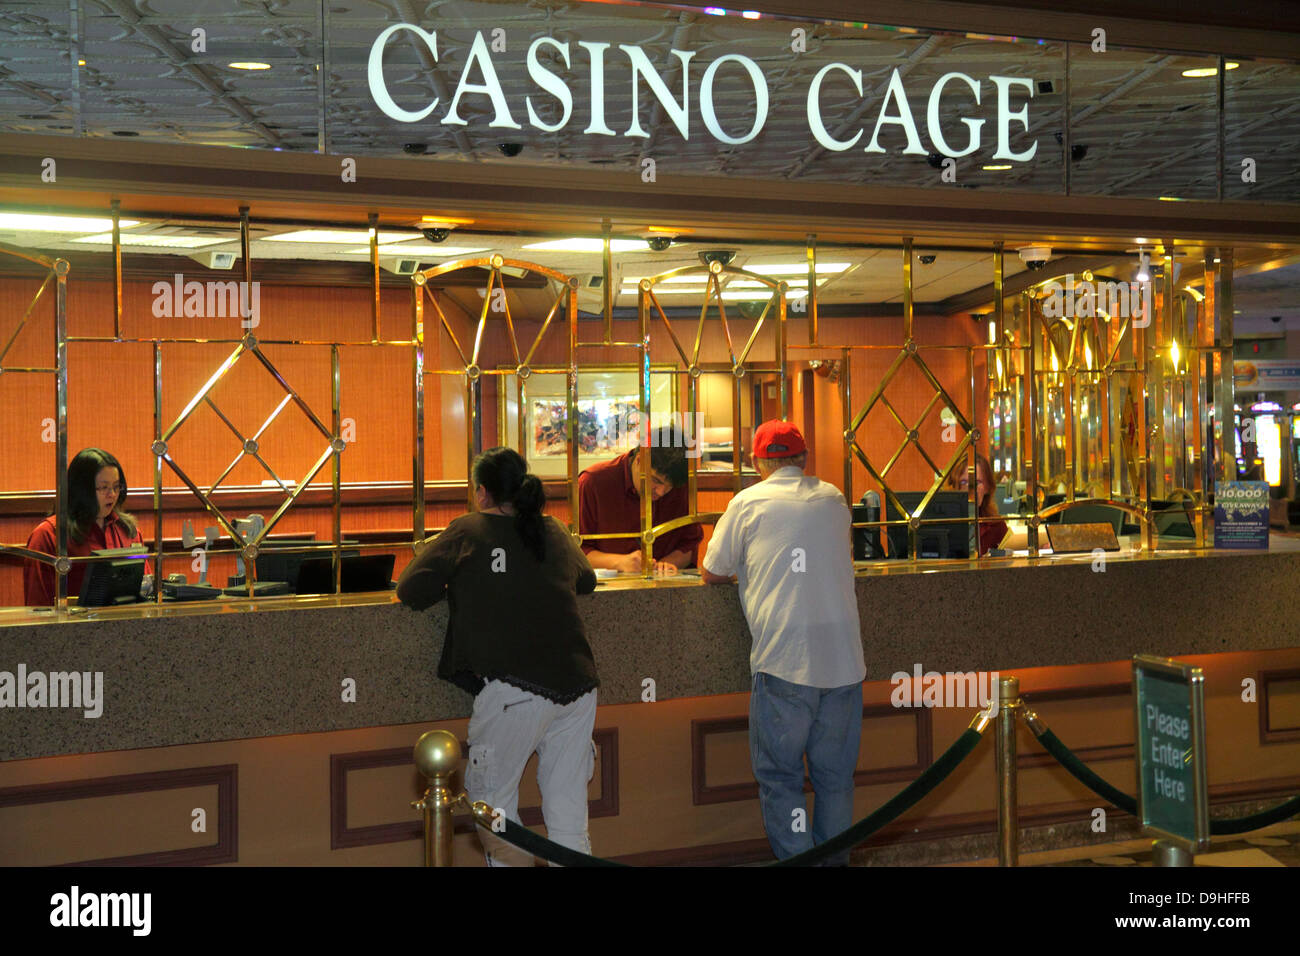 Casino cage accounting harrahs casino online